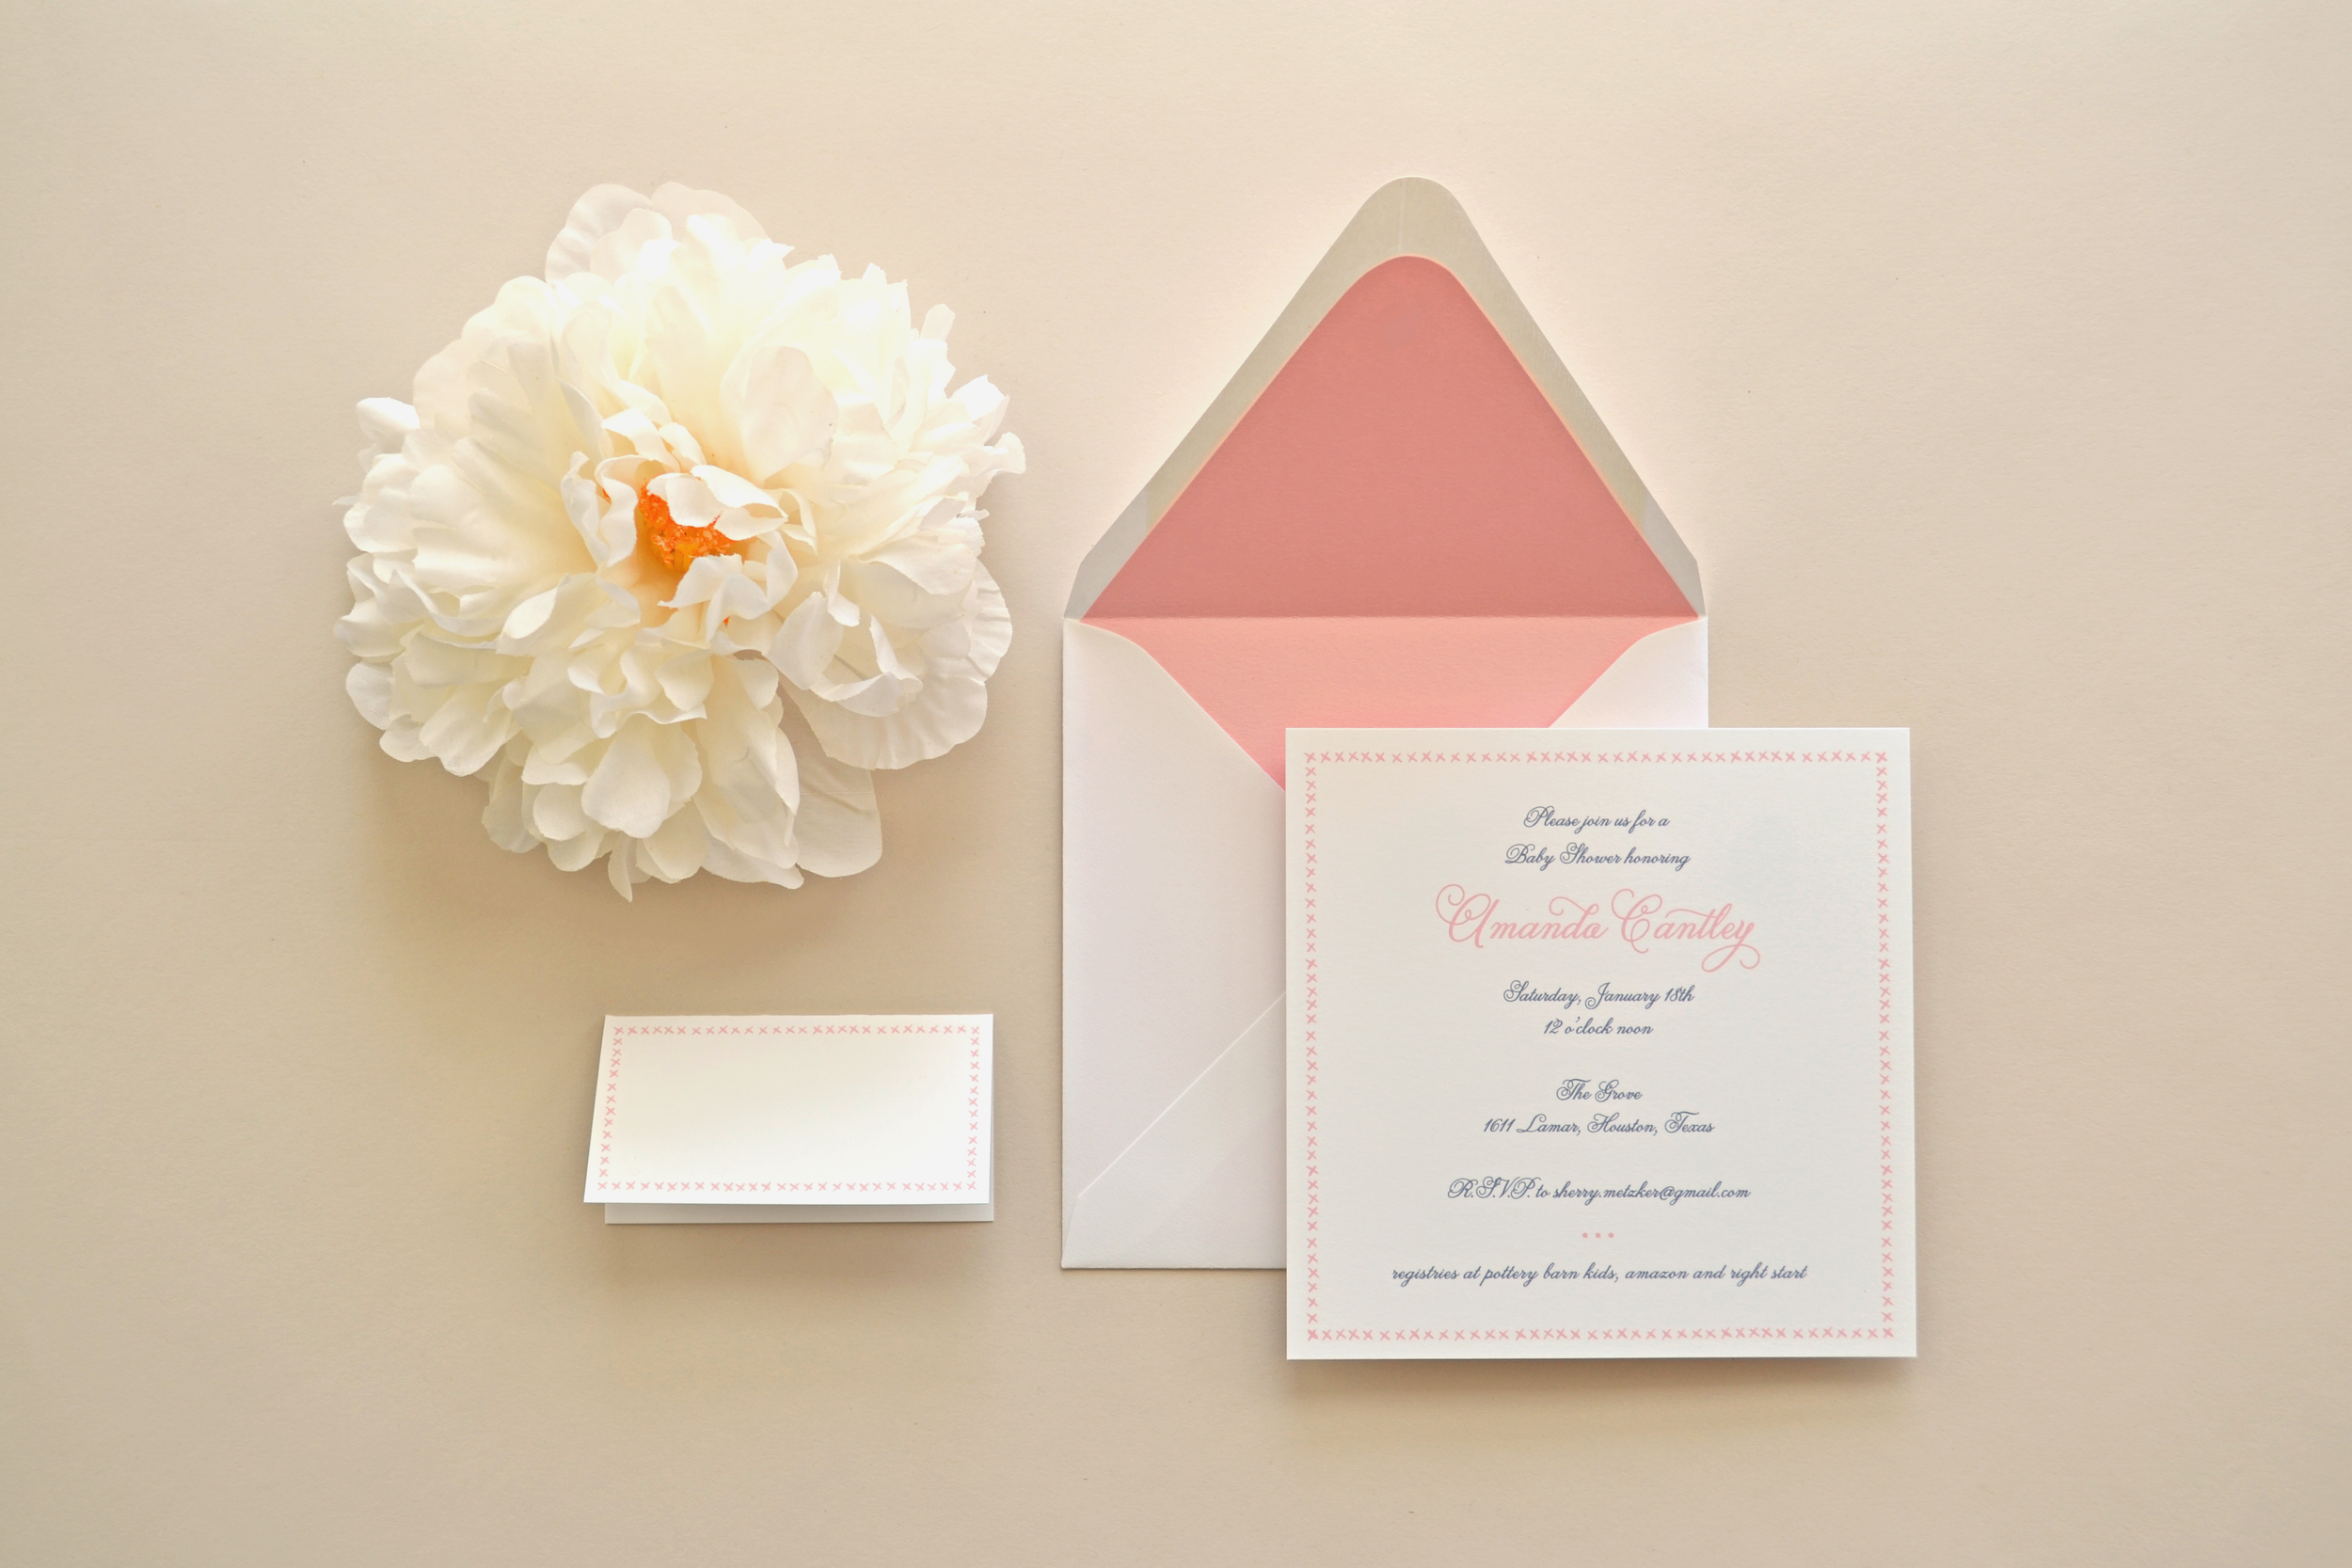 Custom Baby Shower Invitation Simplicity Papers Charming